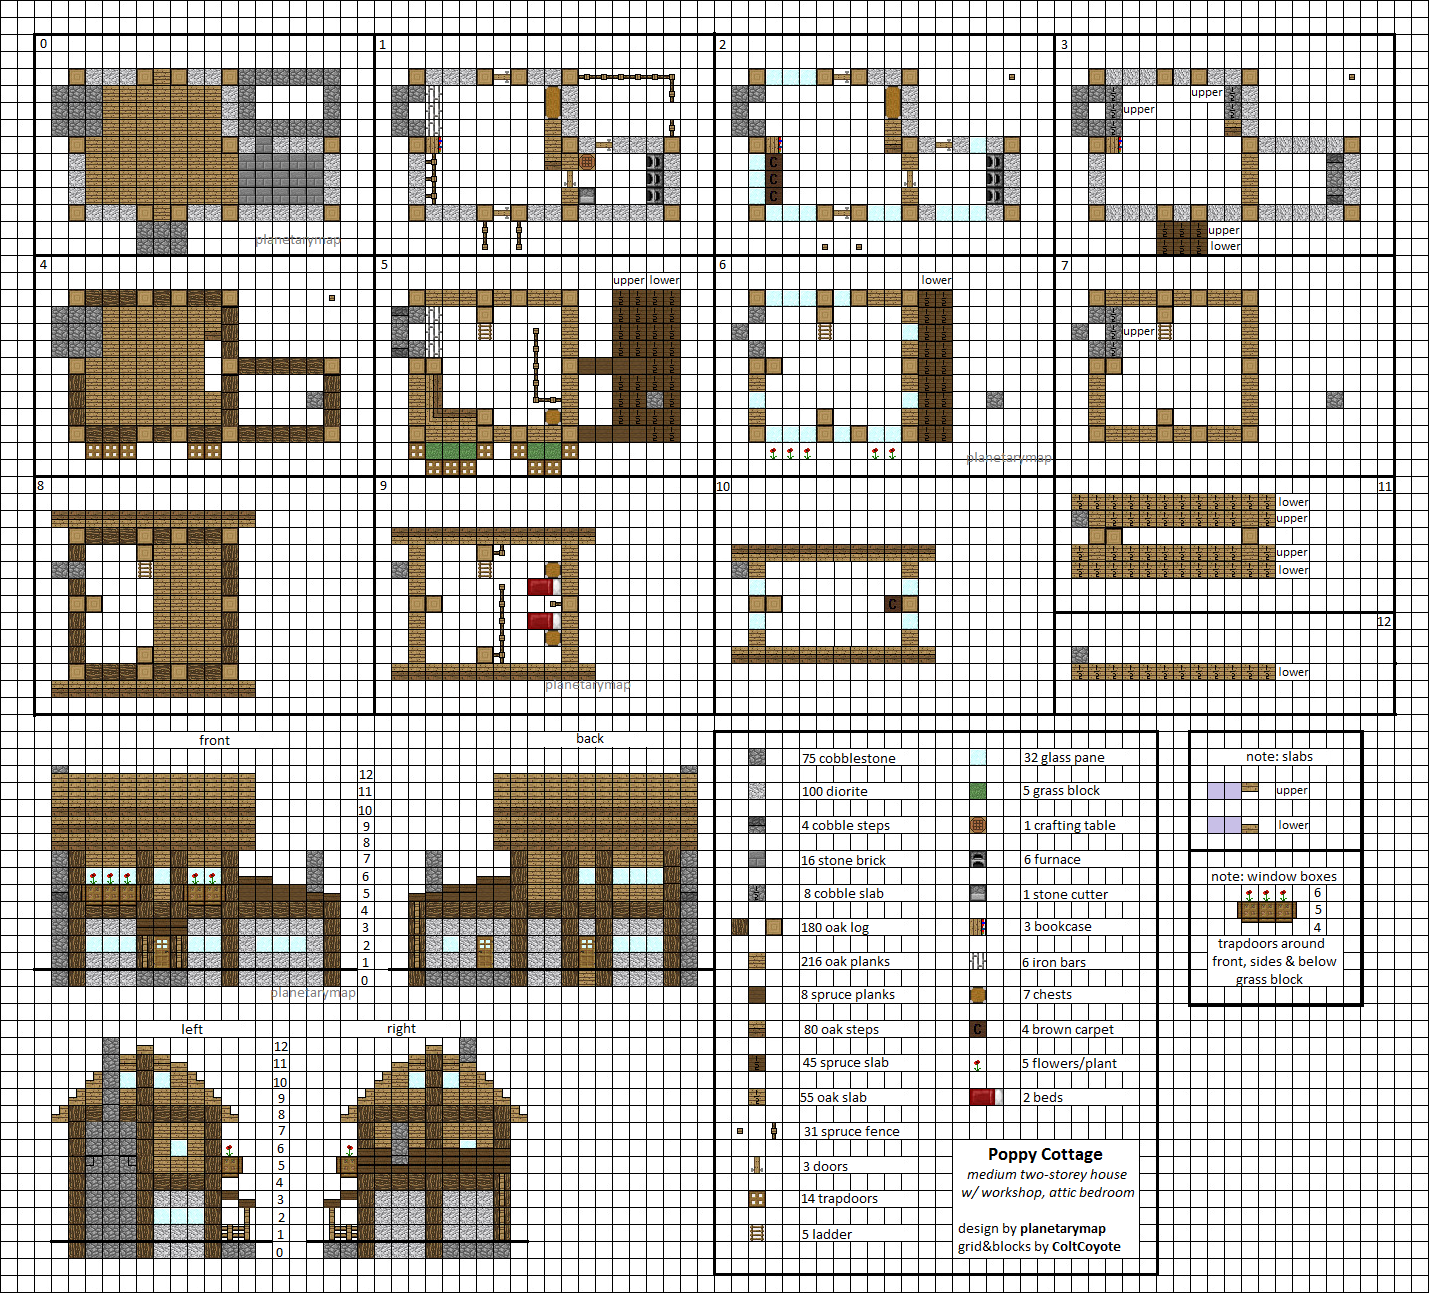 Poppy Cottage Medium Minecraft House Blueprints By